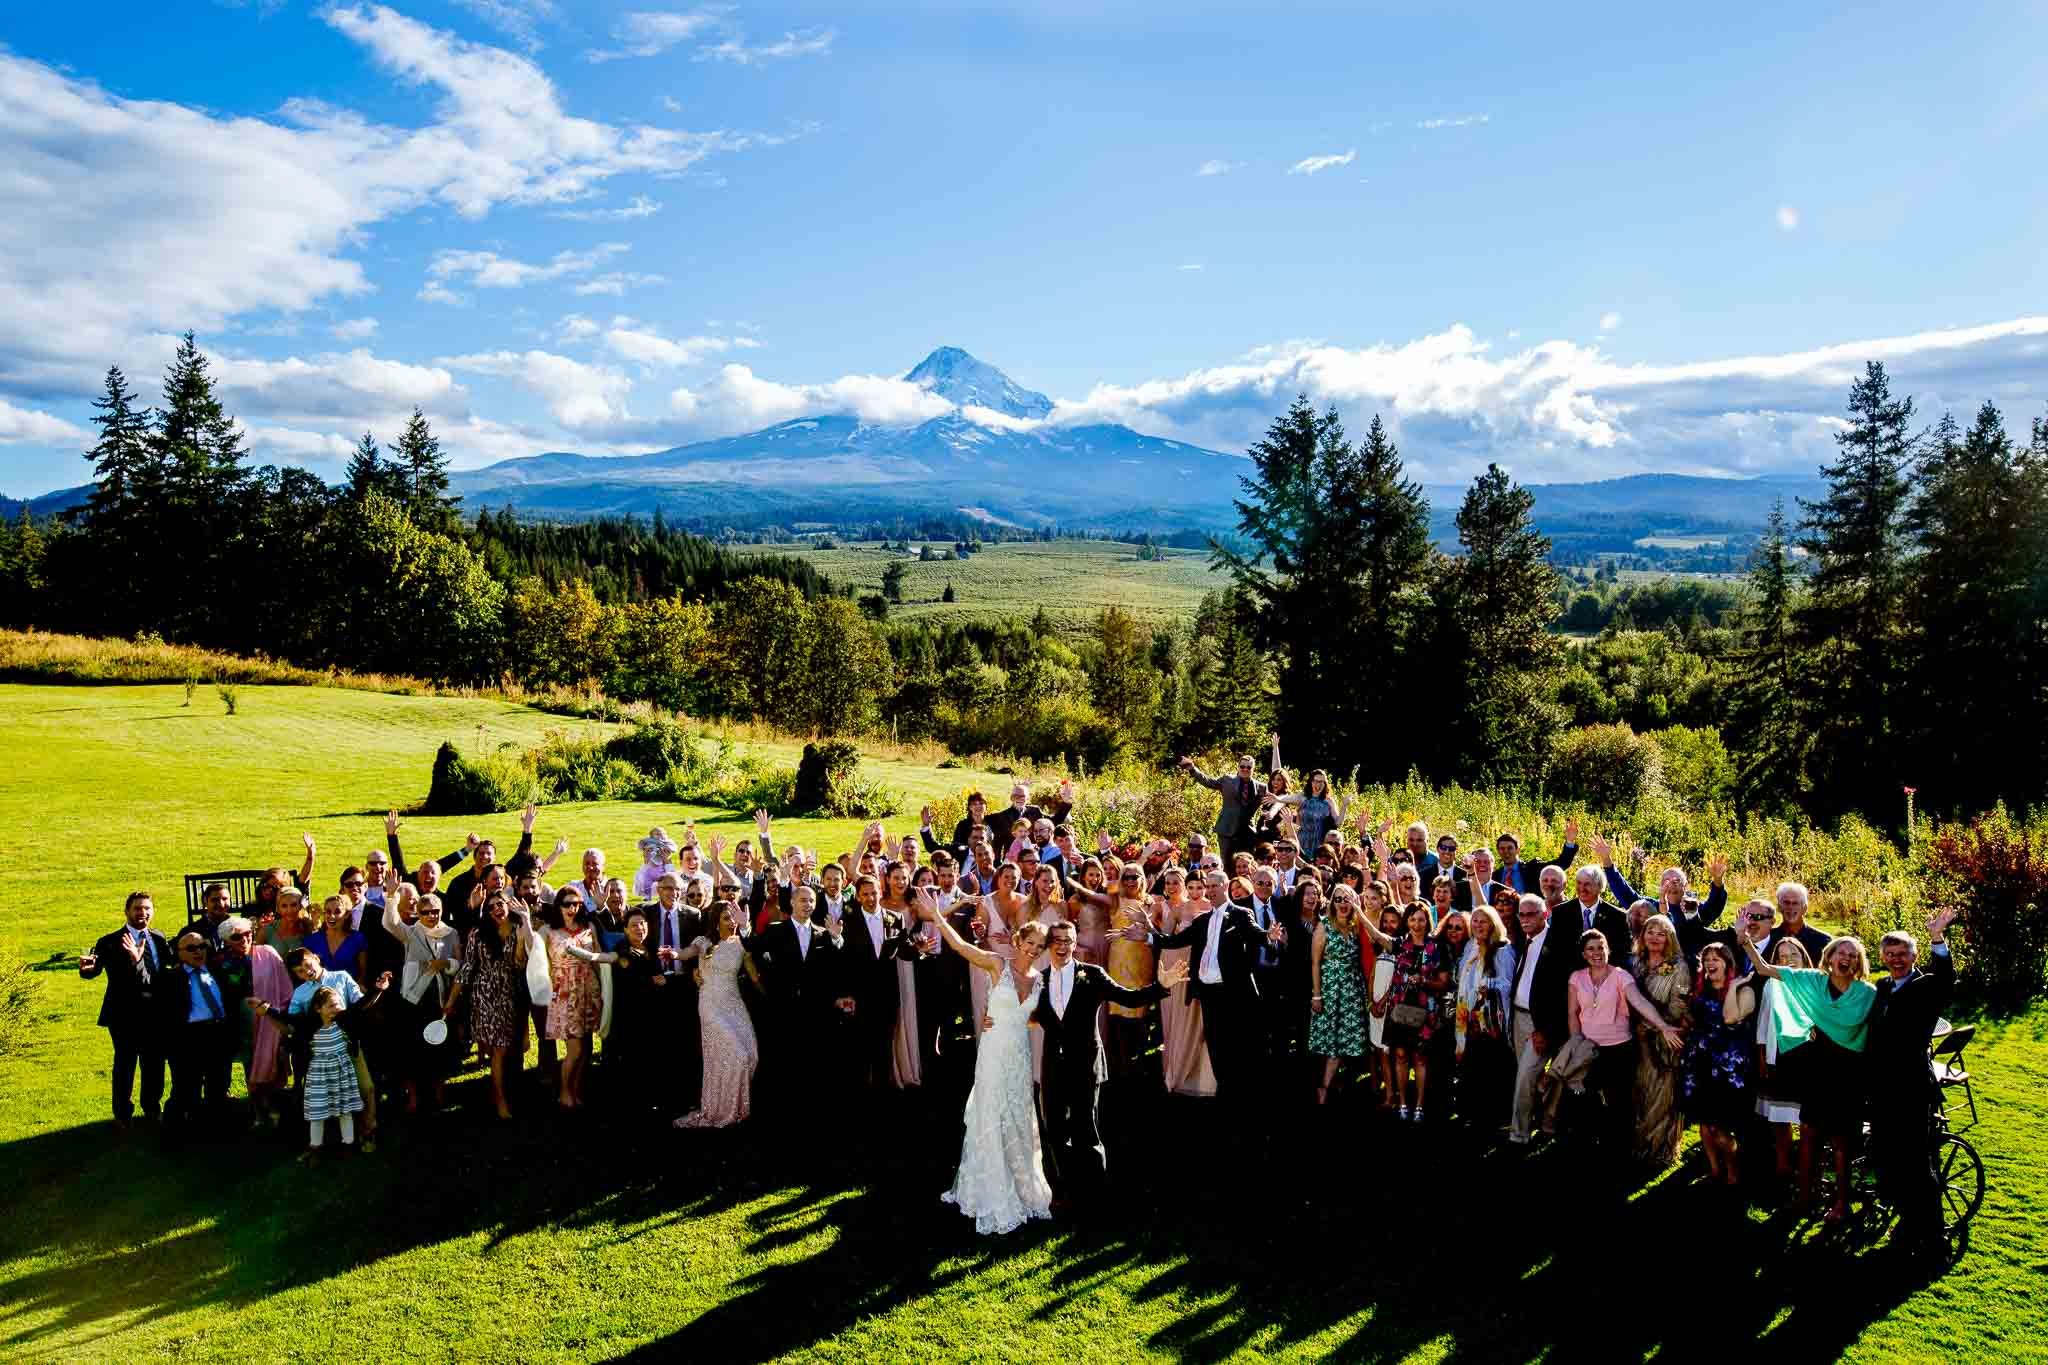 Large group photo at Mt Hood Organic Farms with Mountain in backdrop